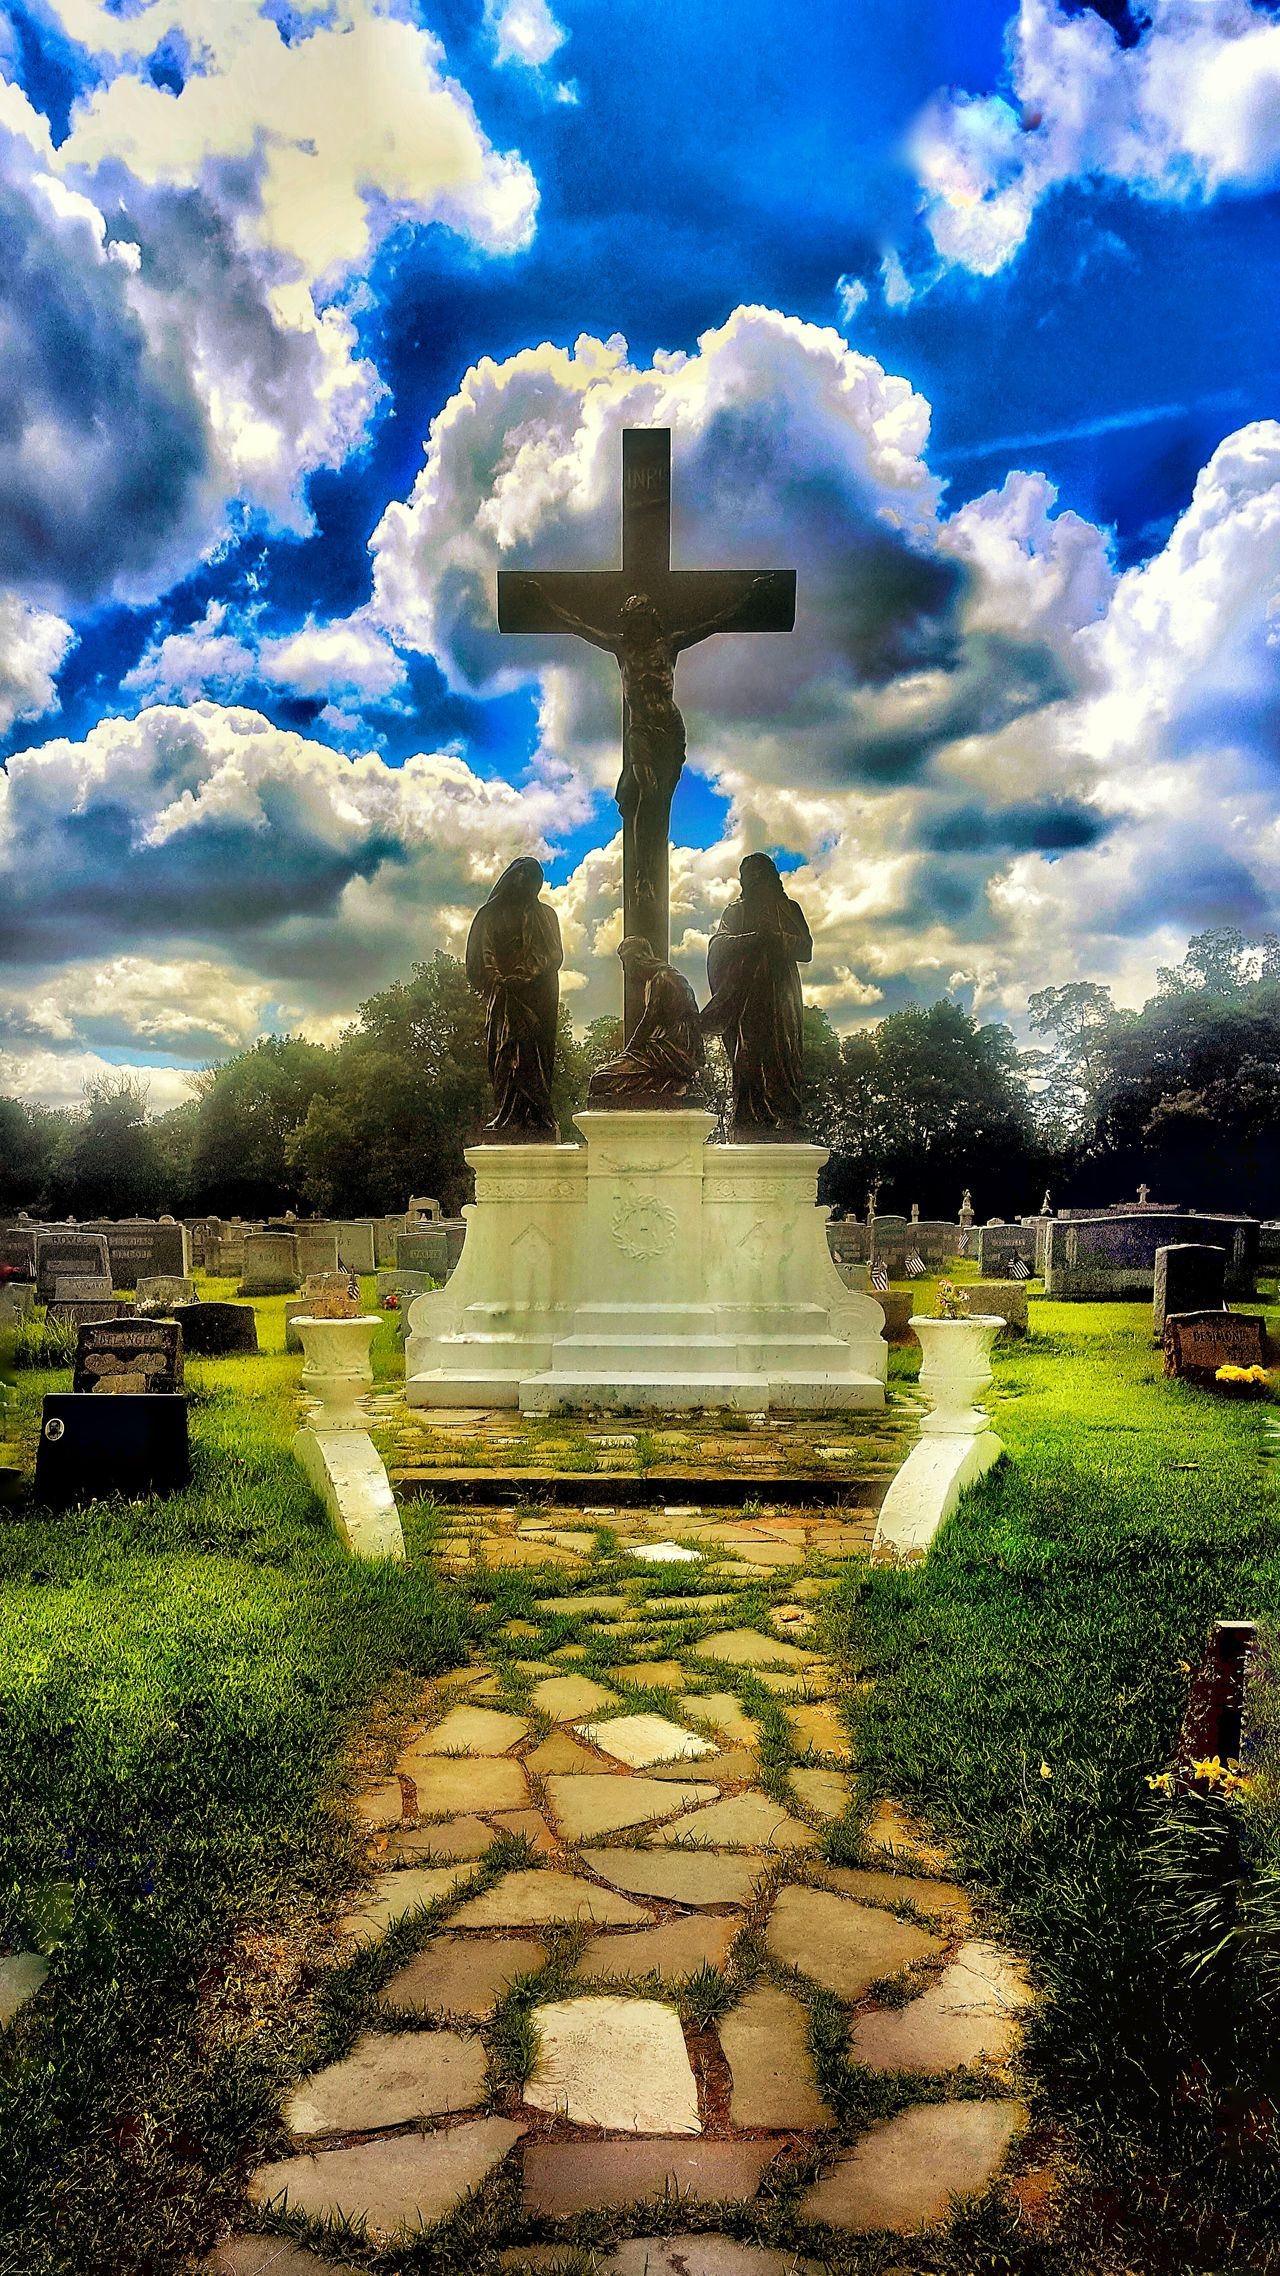 Trippy Dreaming Jesus Christ Cross Cemetery_shots Cruxifix Crucifixion Cemetery Photography Statue Cemetery